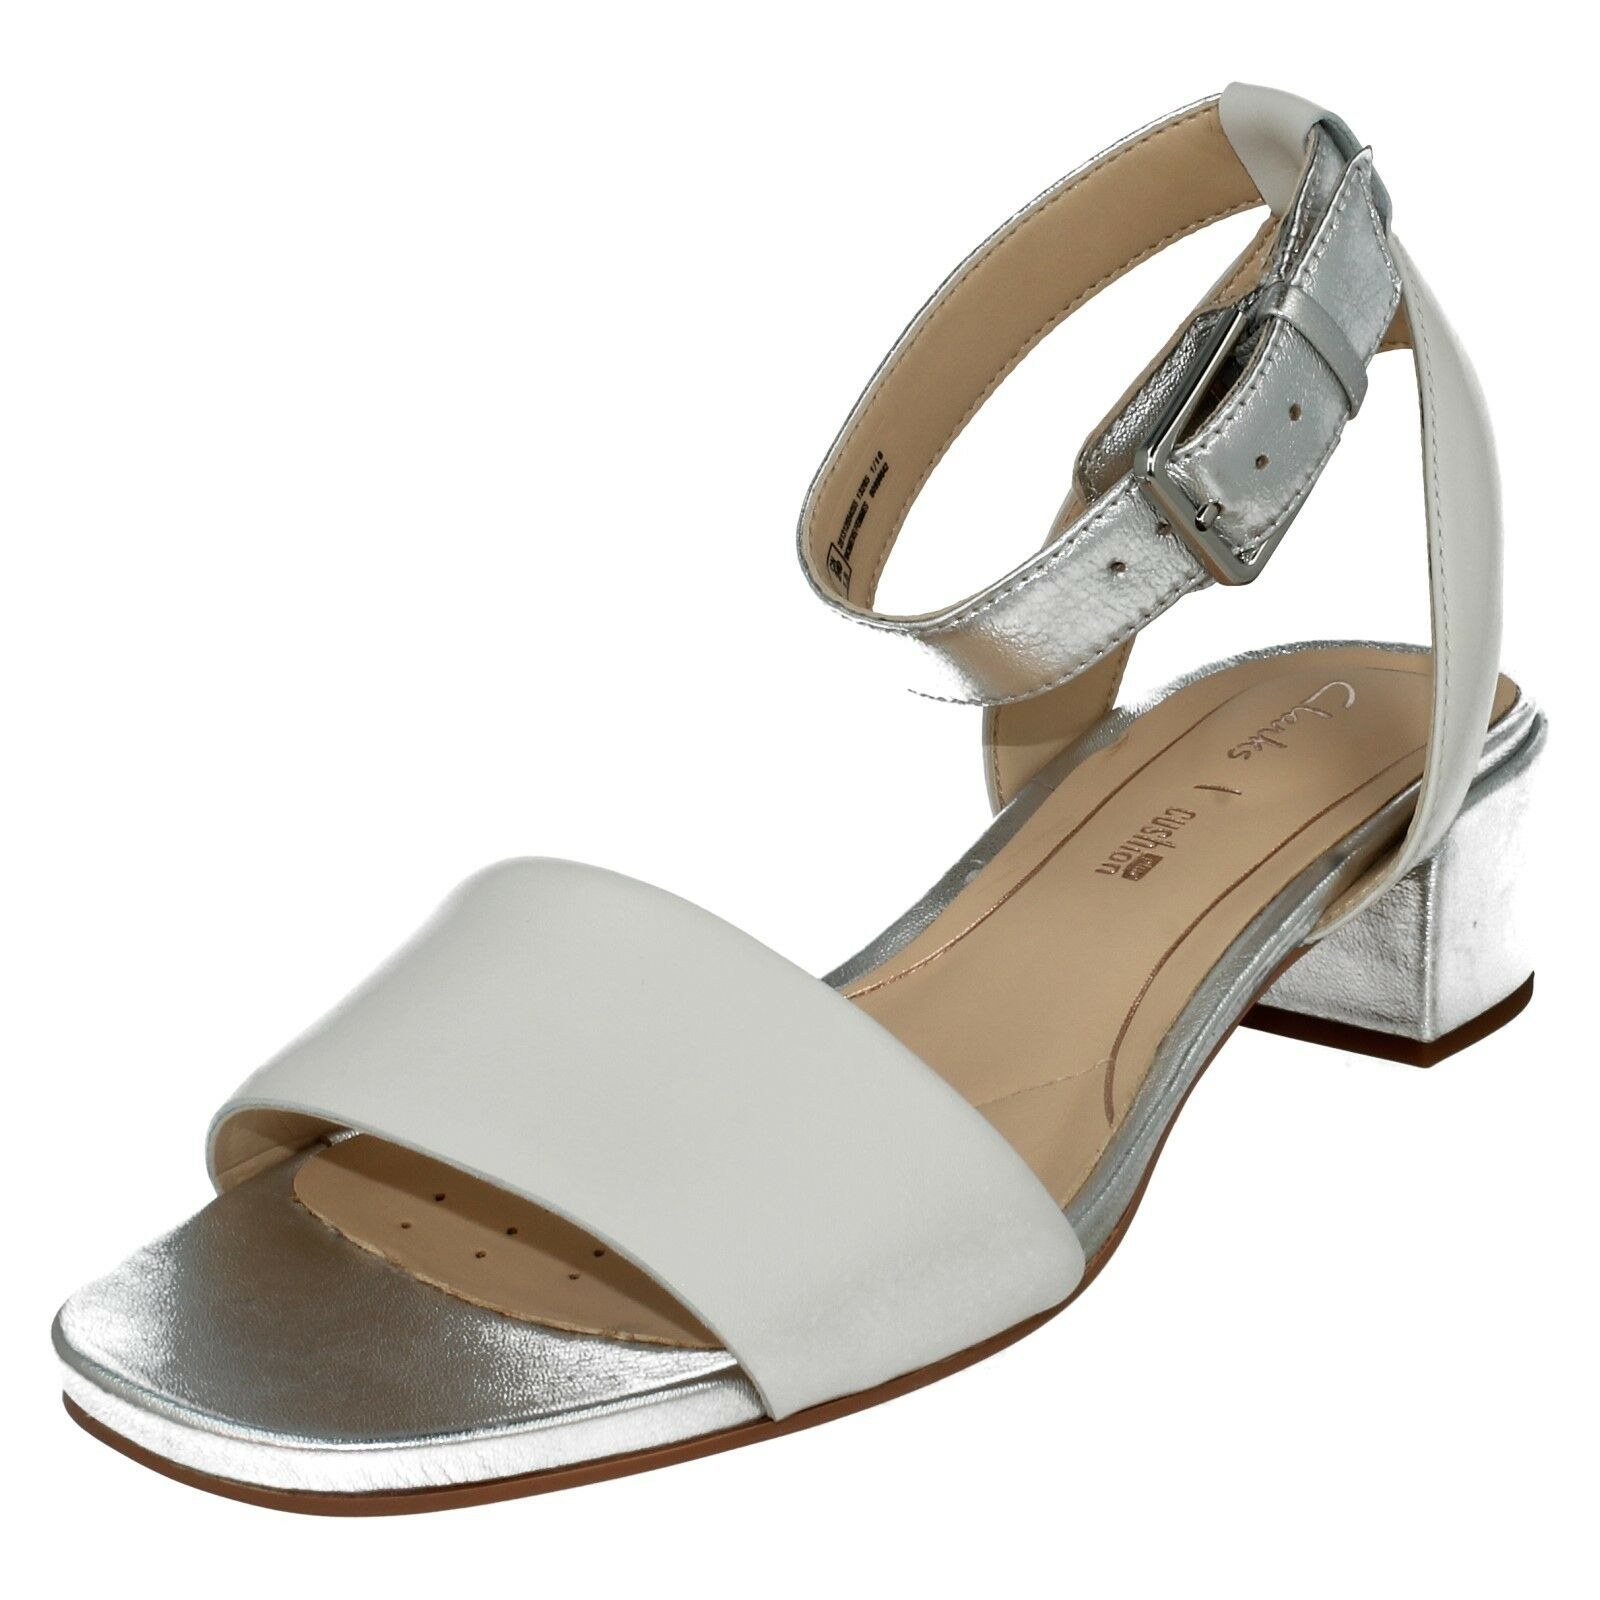 LADIES CLARKS CLARKS CLARKS LEATHER CUSHION PLUS LOW HEEL BUCKLE SANDALS SHOES ORABELLA pink 53bde8